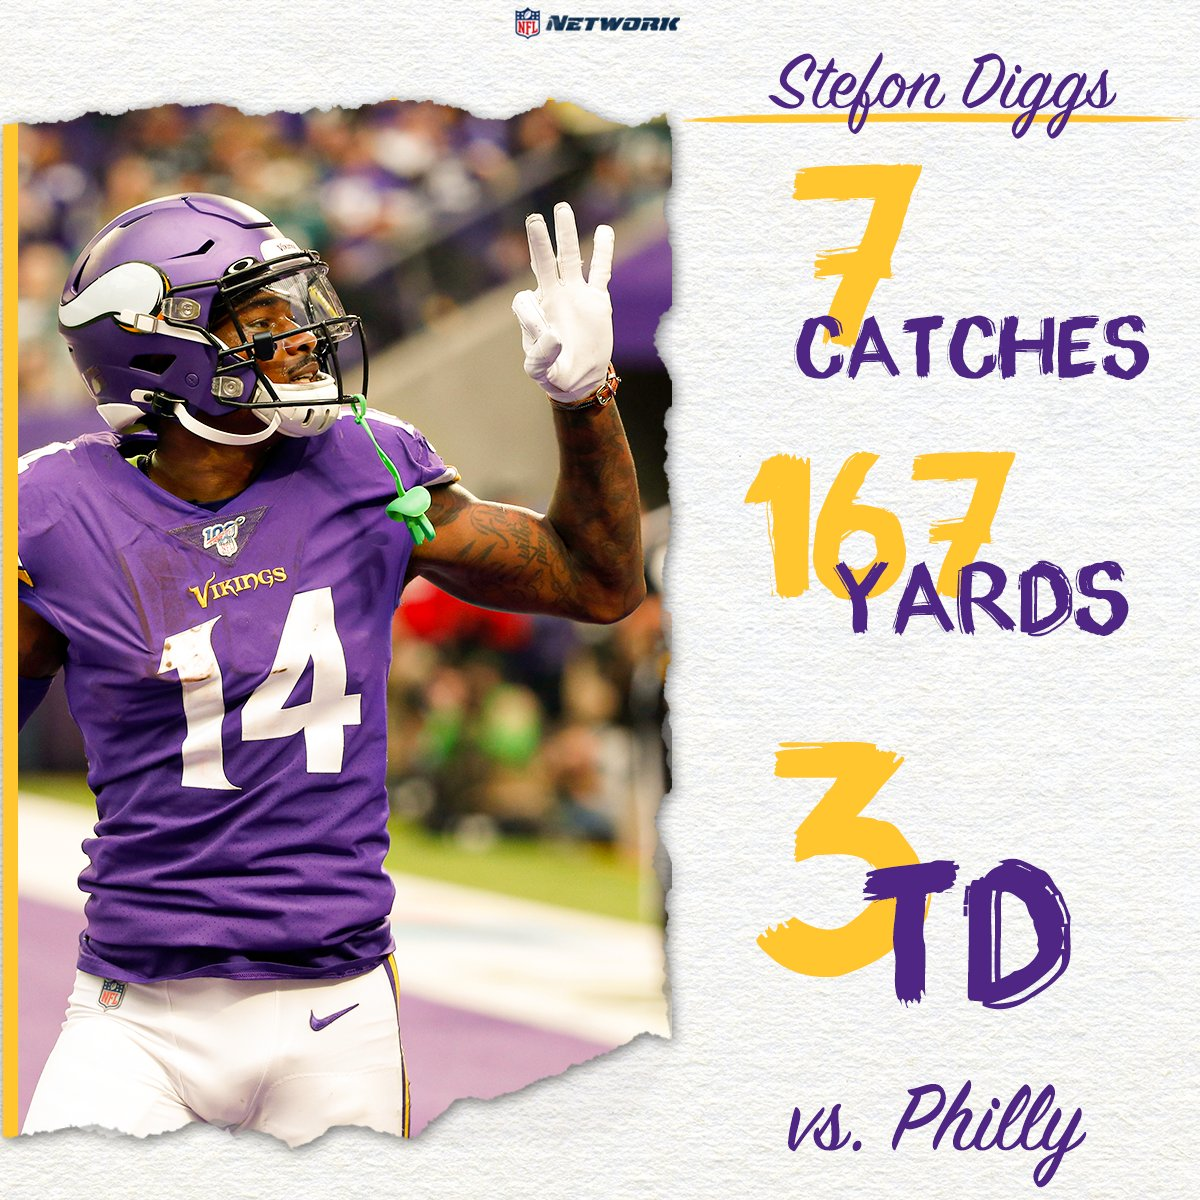 infographic of Stefon Diggs via nhl network on twitter